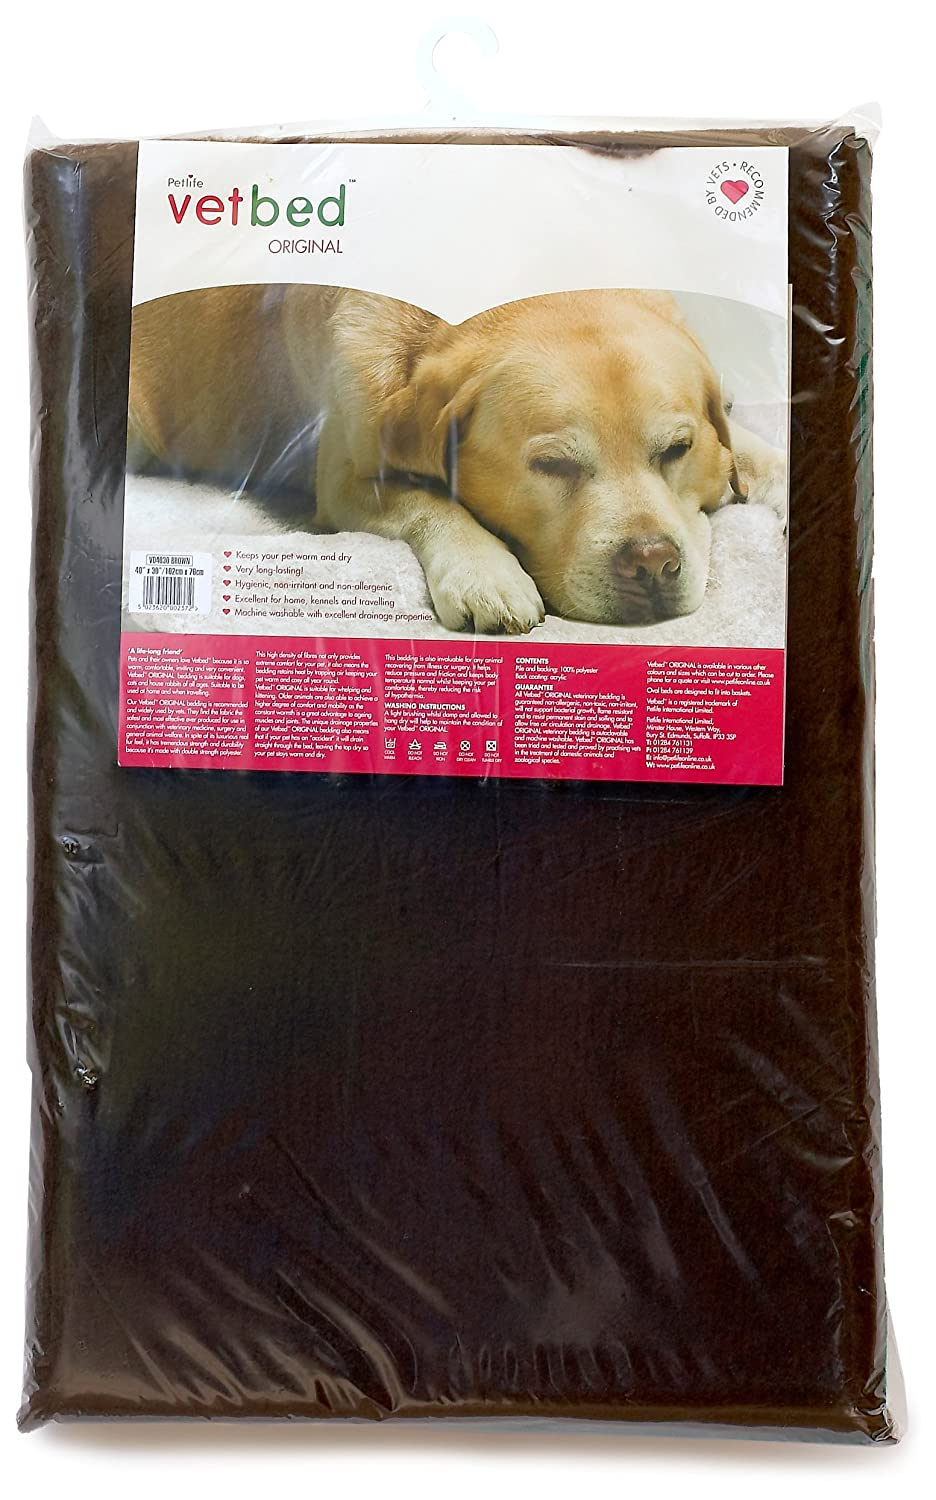 Vetbed Petlife Original - Cama para perro/gato, 101,6 x 76,2 cm, color marrón: Amazon.es: Productos para mascotas